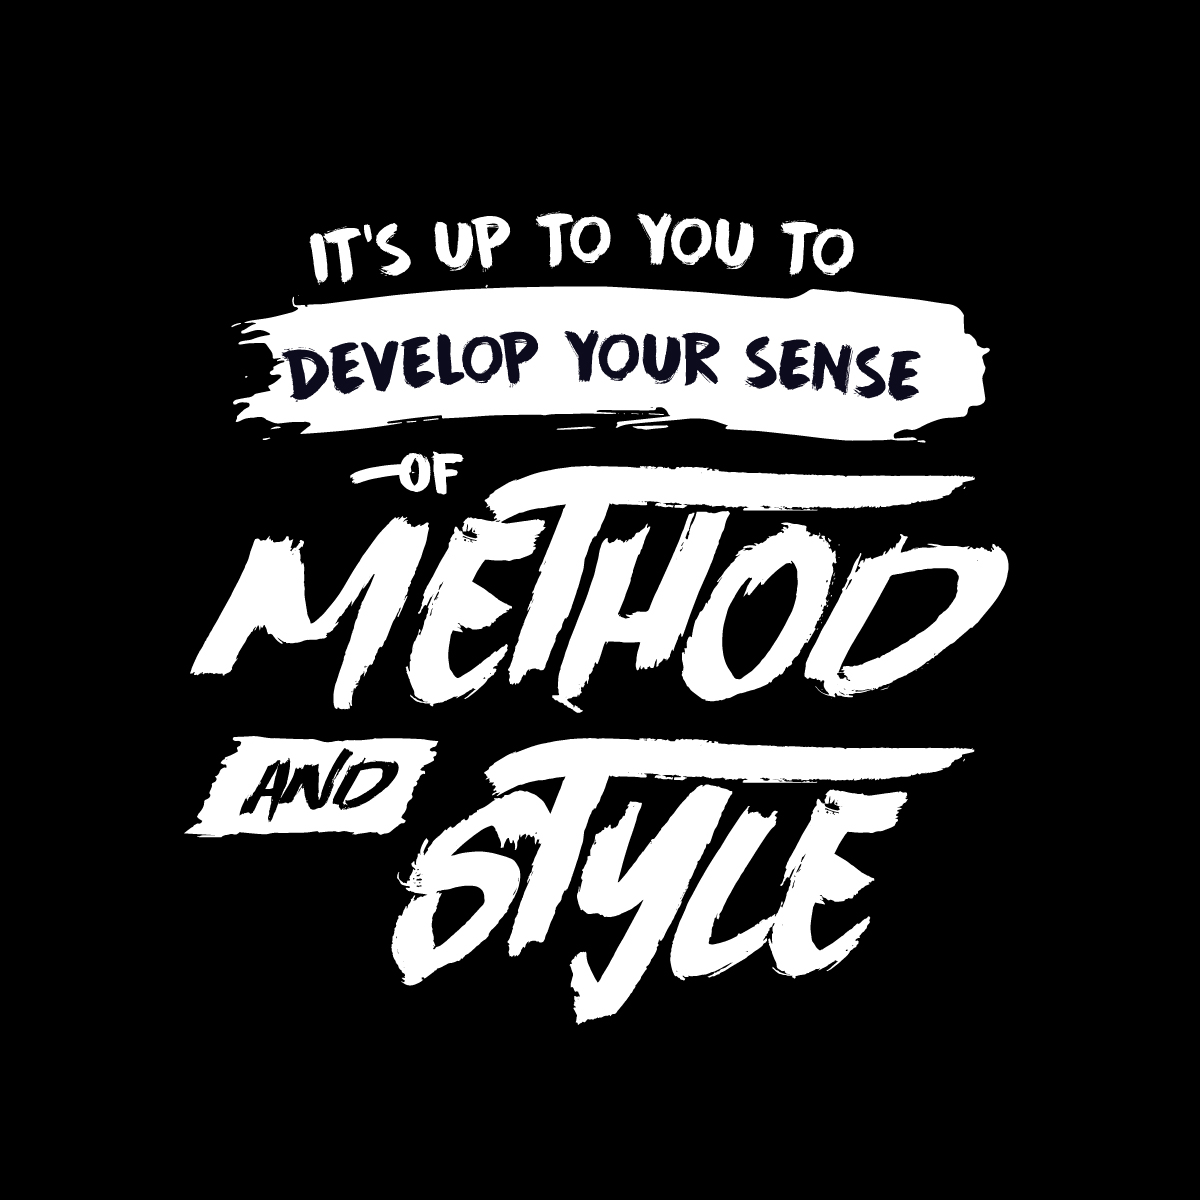 It's up to you to develop your sense of method and style.